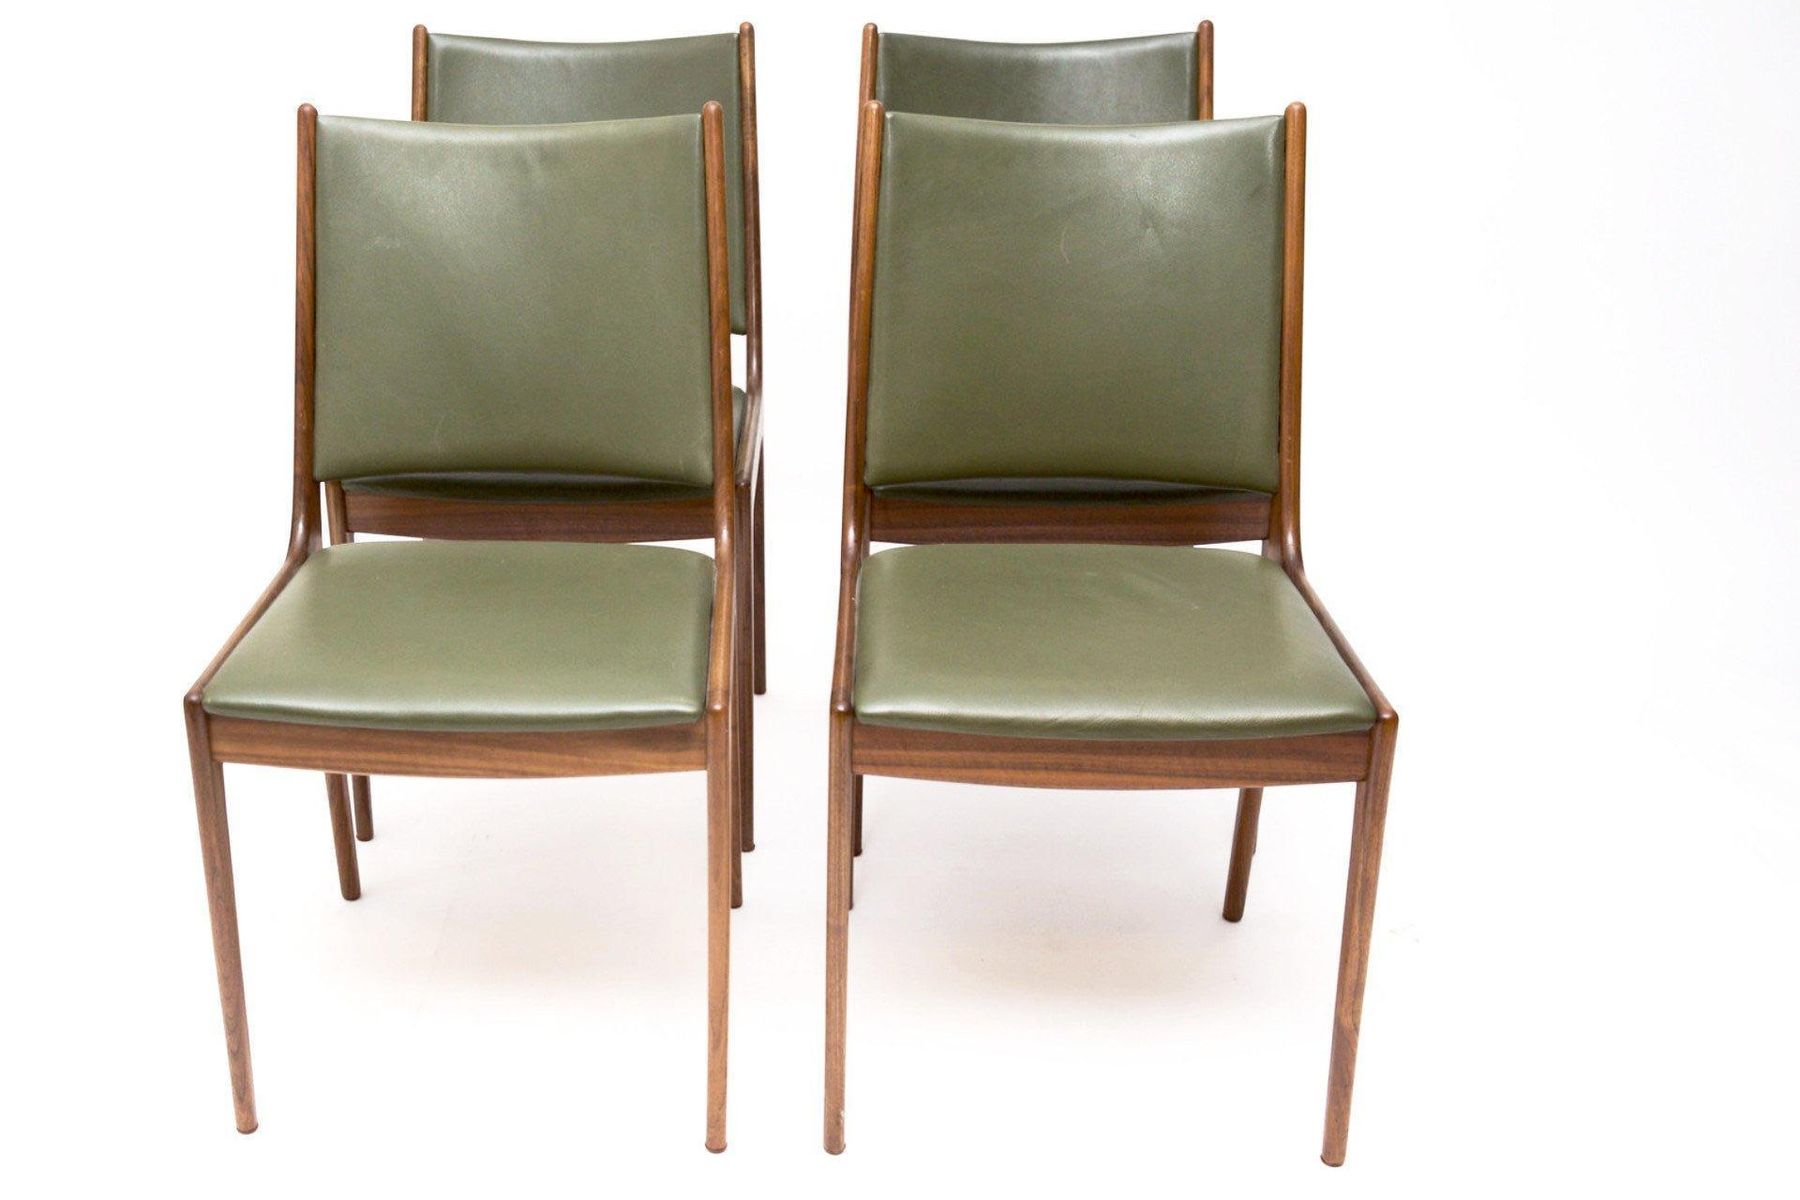 Danish Green Leather Dining Chairs by Johannes Andersen for Uldum – Green Leather Dining Chairs